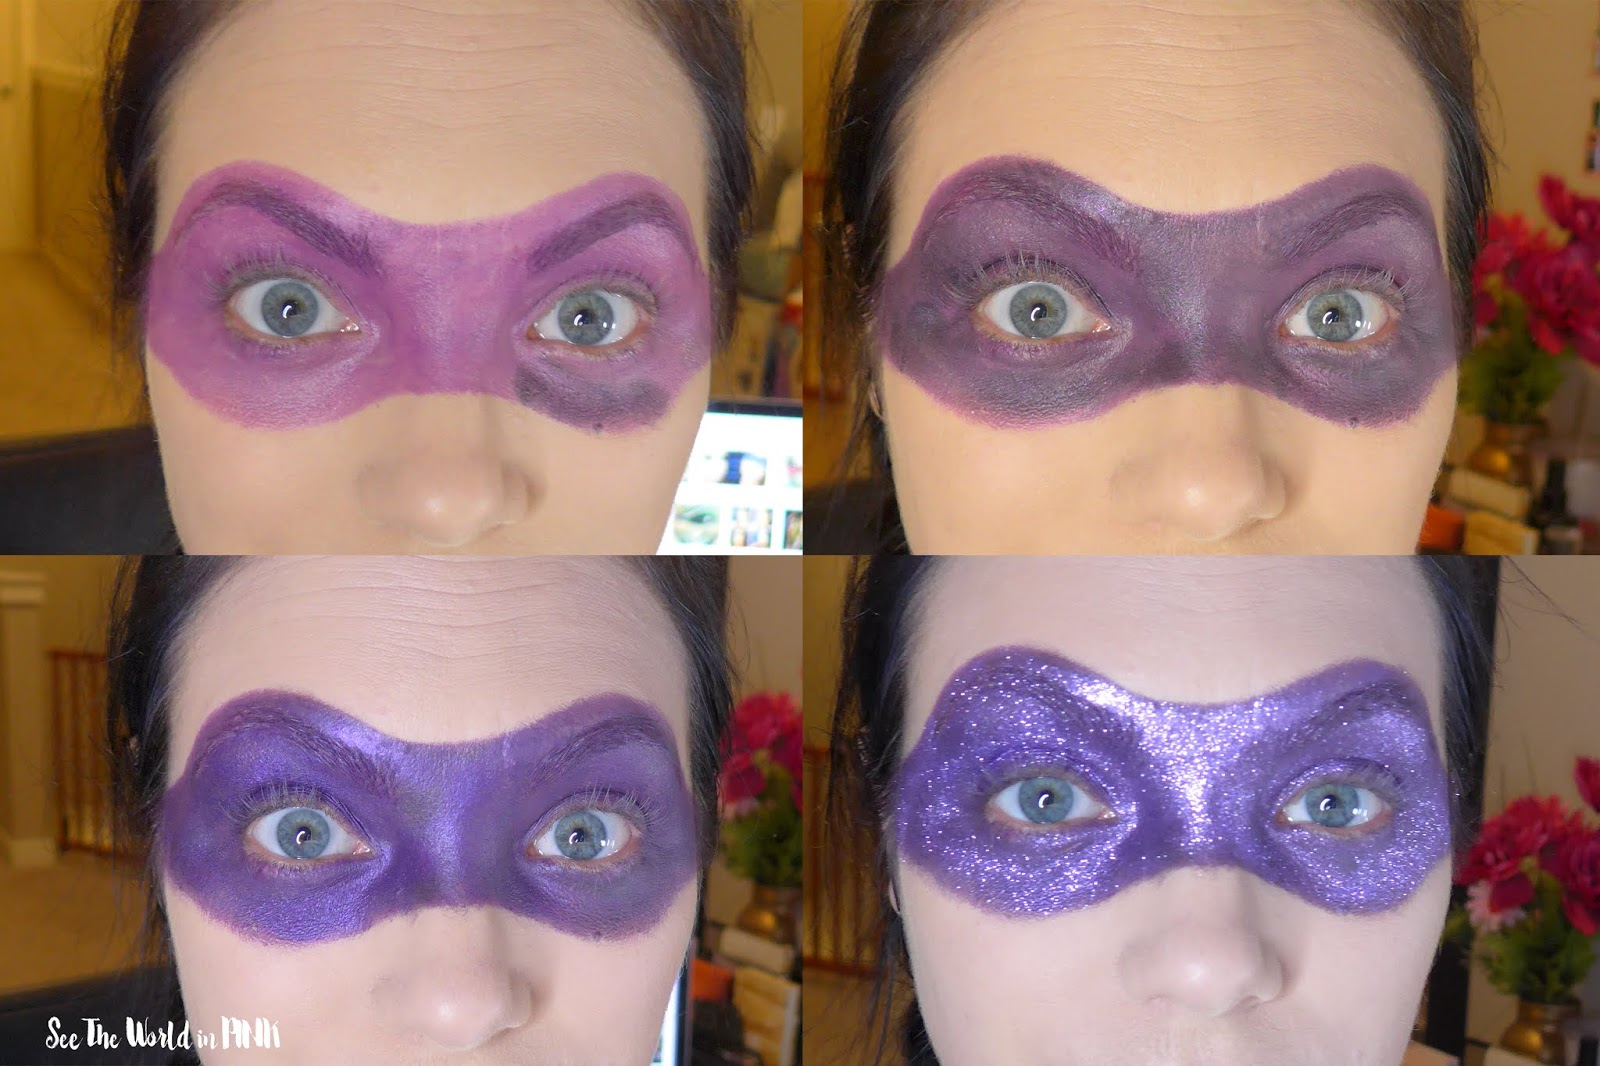 Halloween Makeup - TNMT Ninja Turtle Donatello Makeup!